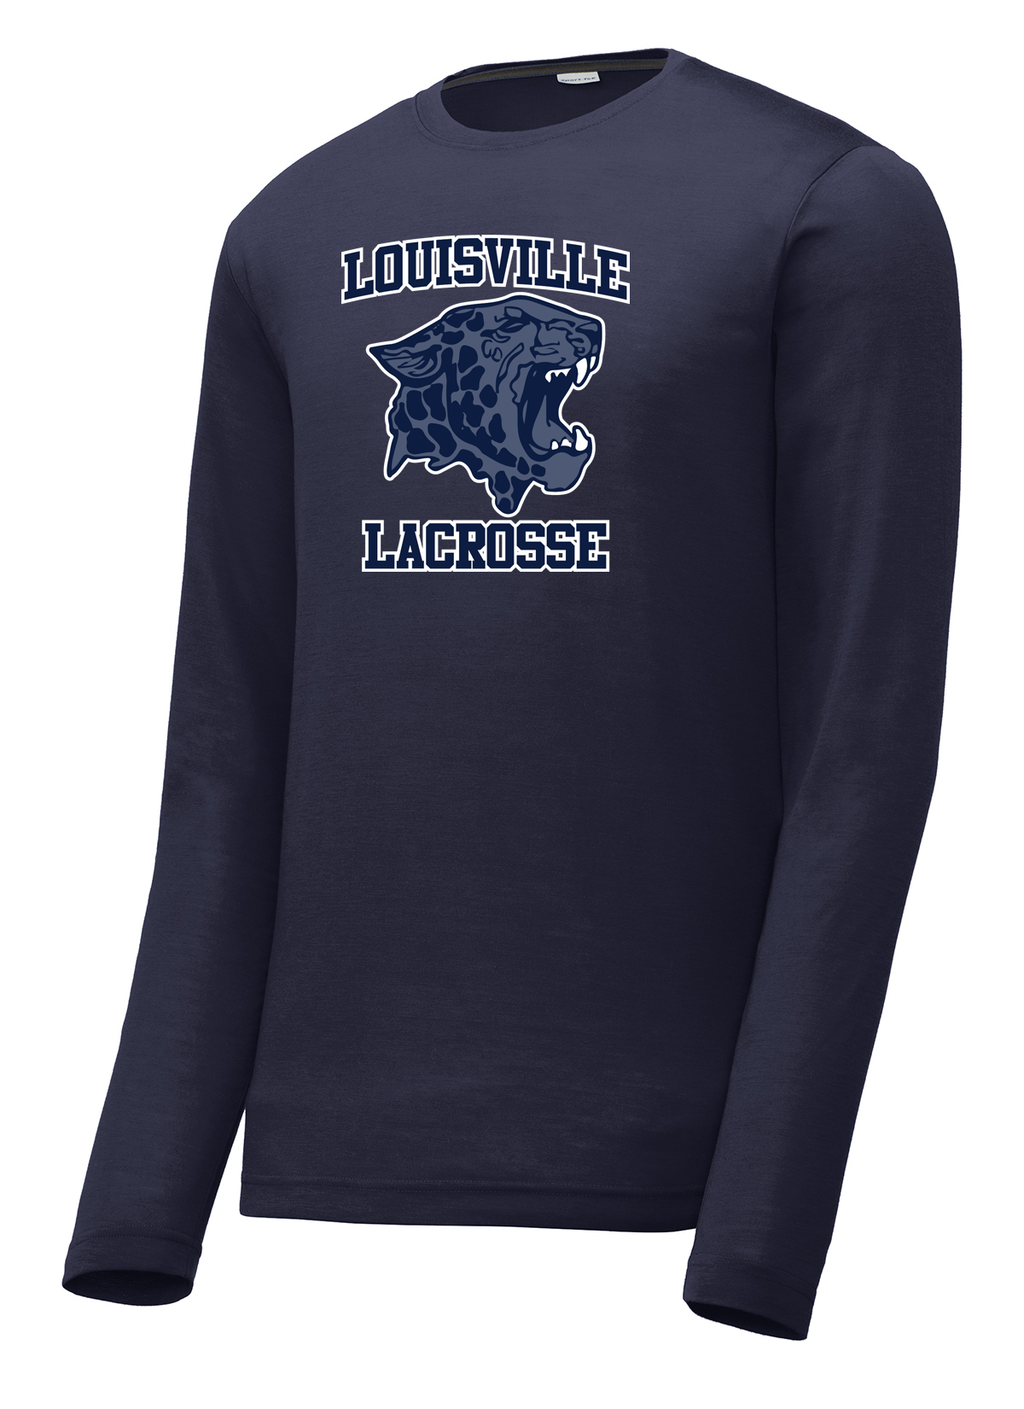 Louisville High School Lacrosse Long Sleeve CottonTouch Performance Shirt